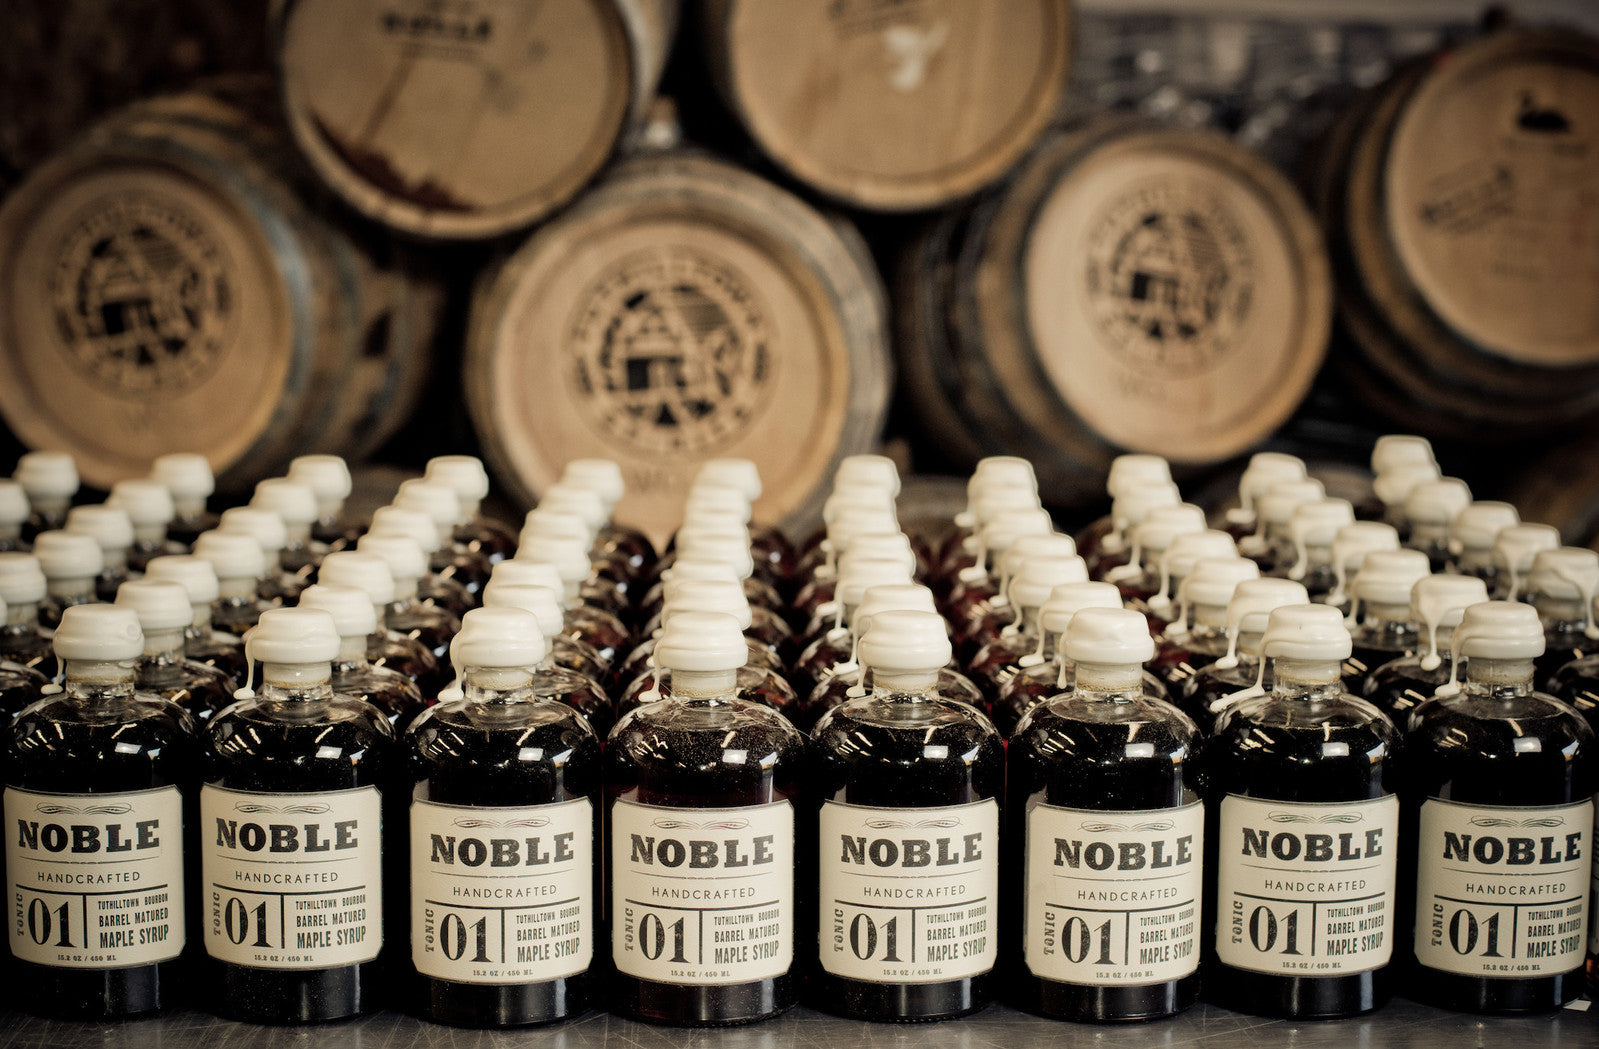 Noble Handcrafted Maple Inspired Tonics Hong Kong